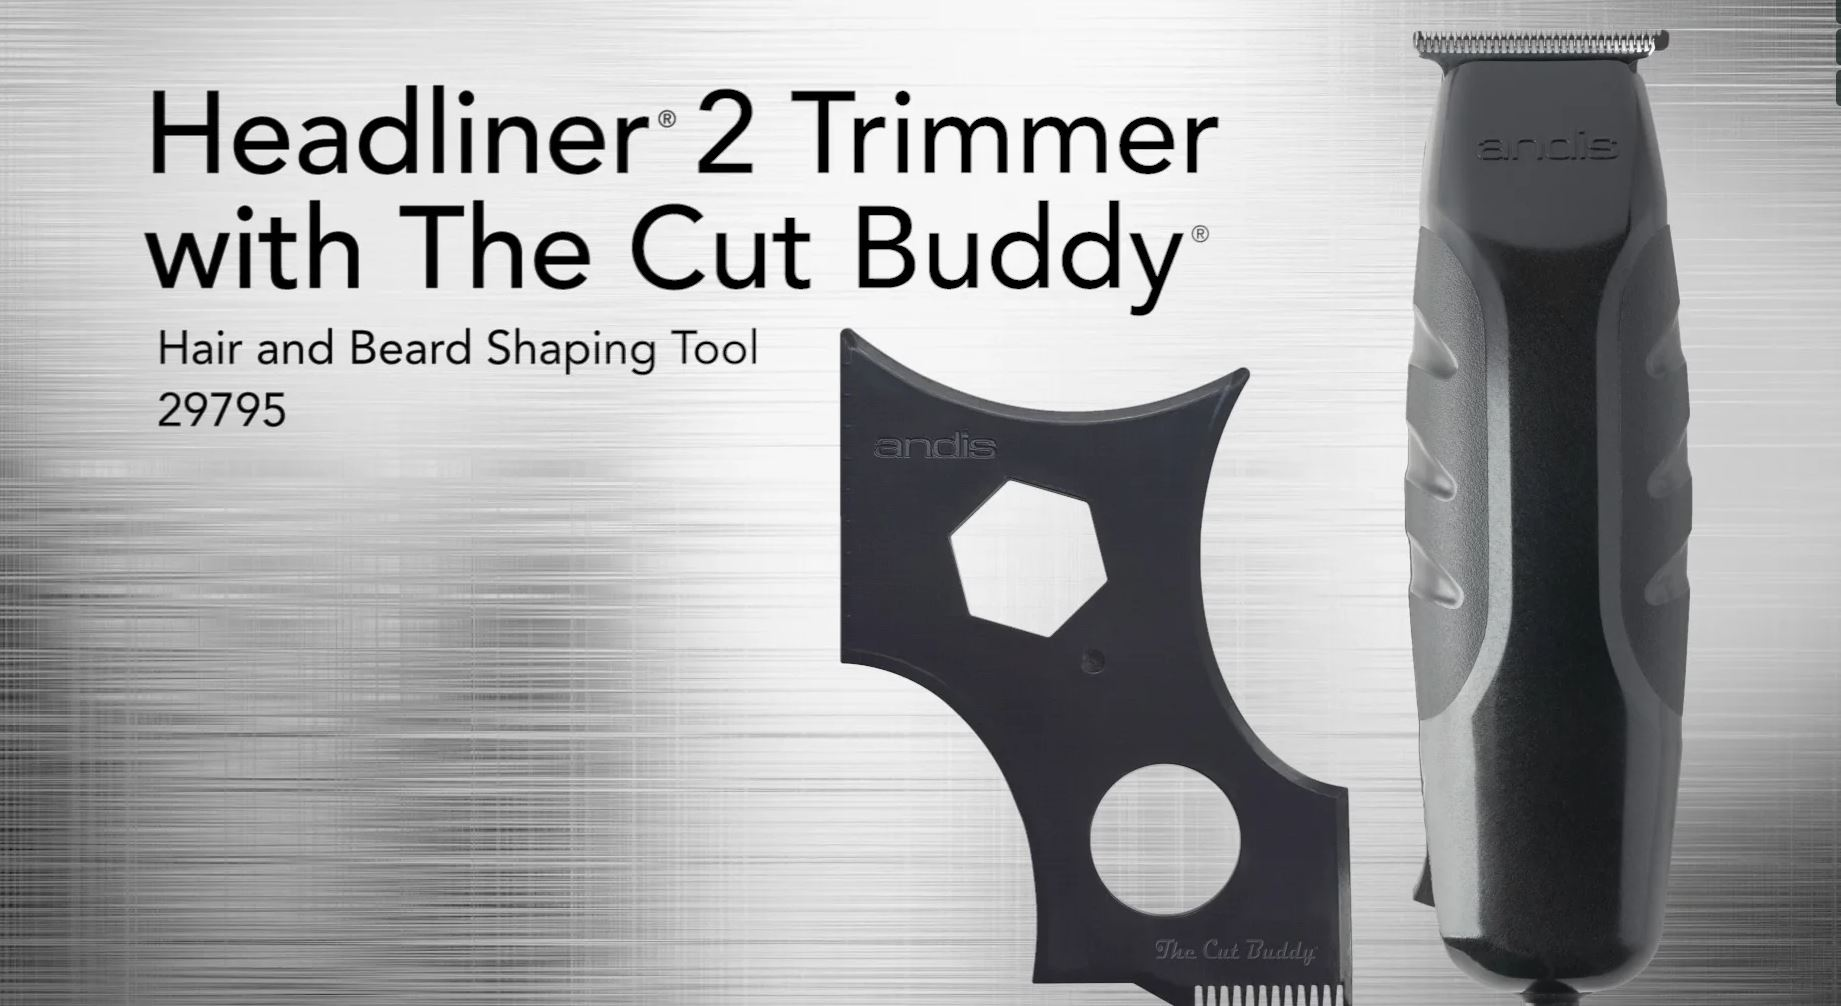 Headliner 2 Trimmer with The Cut Buddy